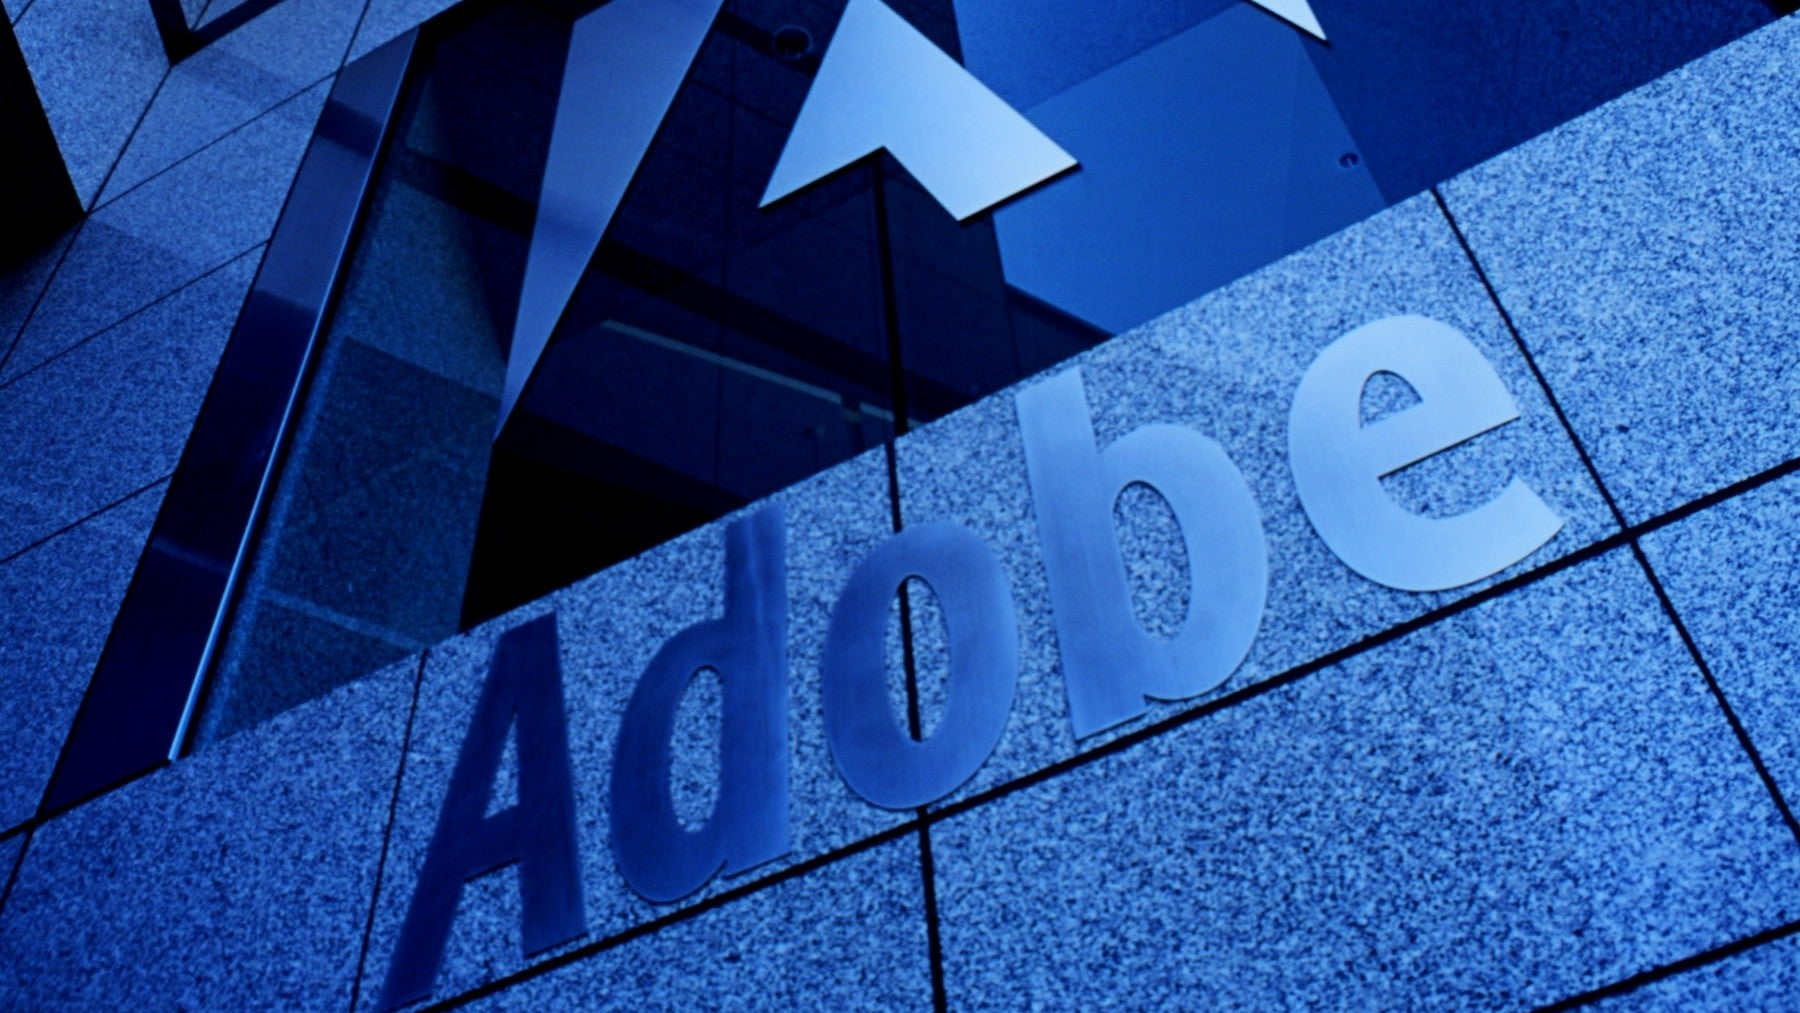 7.5 Million Adobe Accounts Exposed By Security Blunder: Report